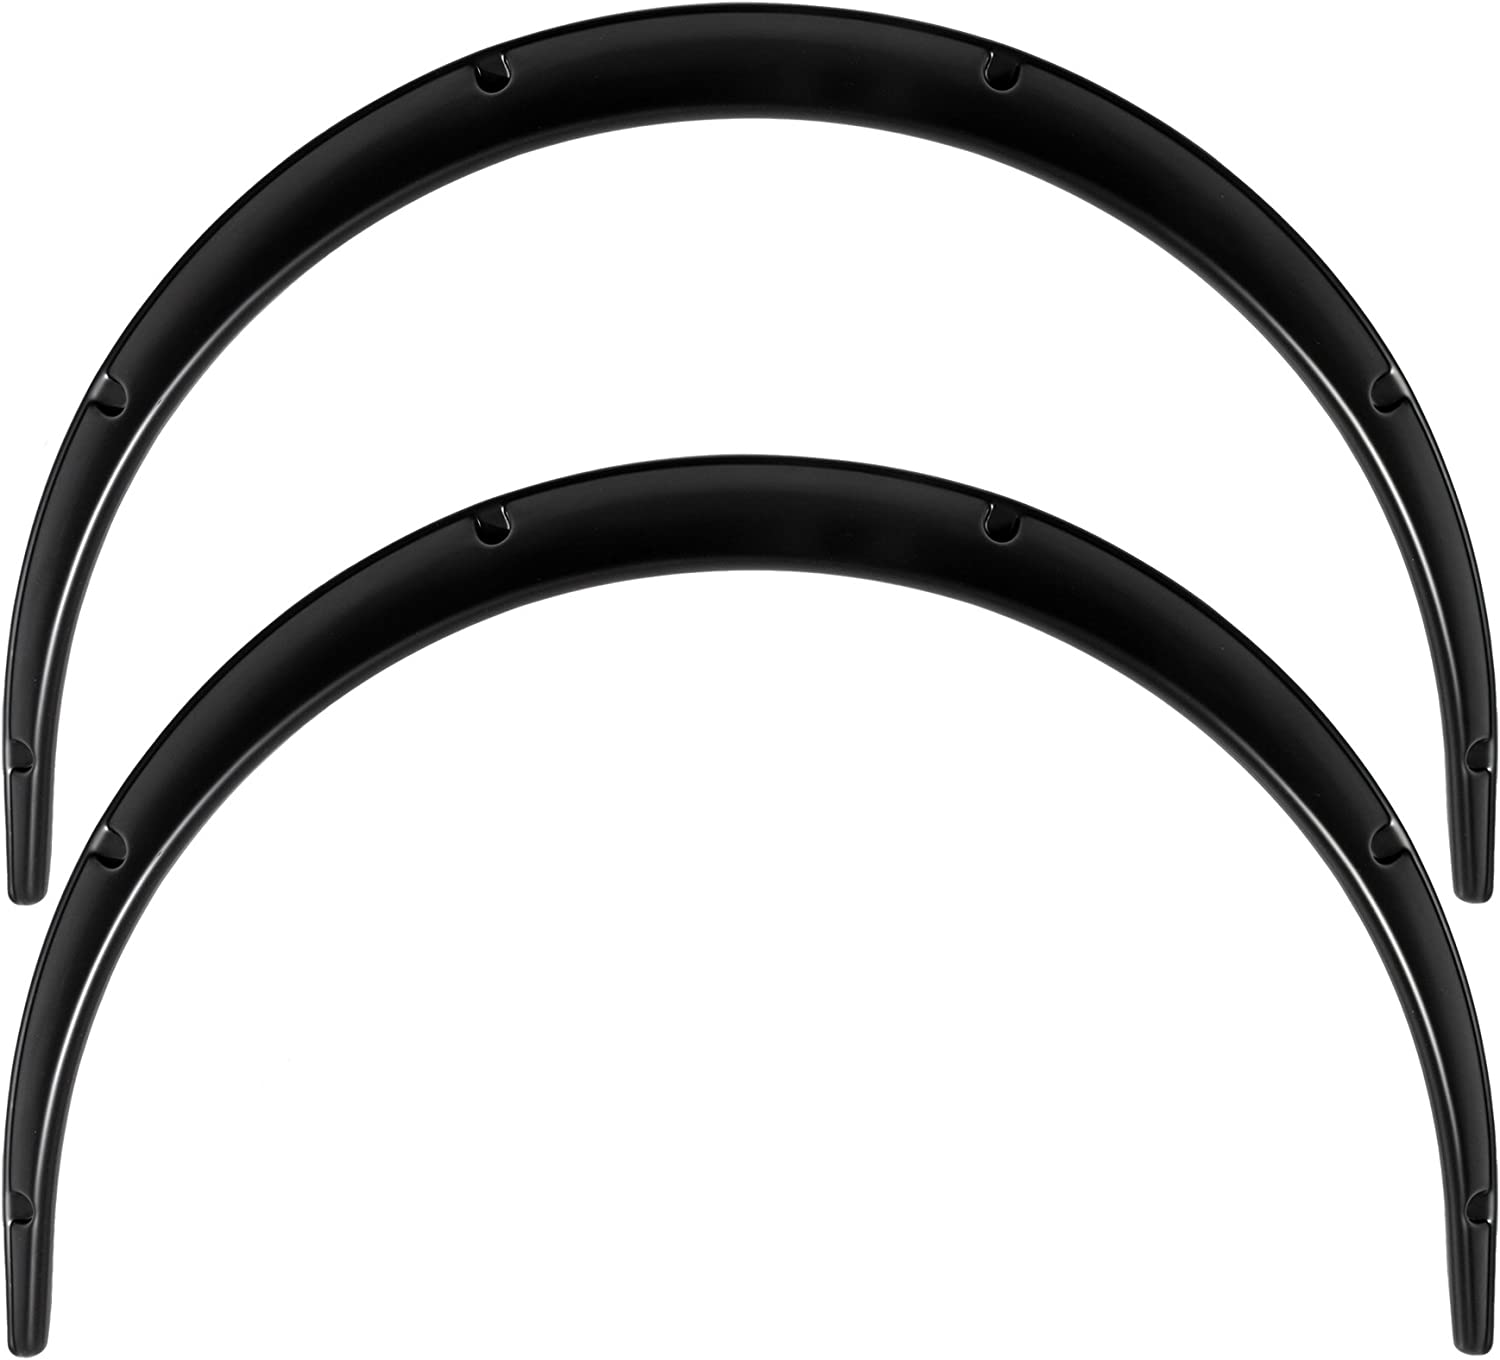 Jumdoo Universal JDM Fender flares CONCAVE over wide body Arch Extensions ABS 2.75 70mm 2pcs